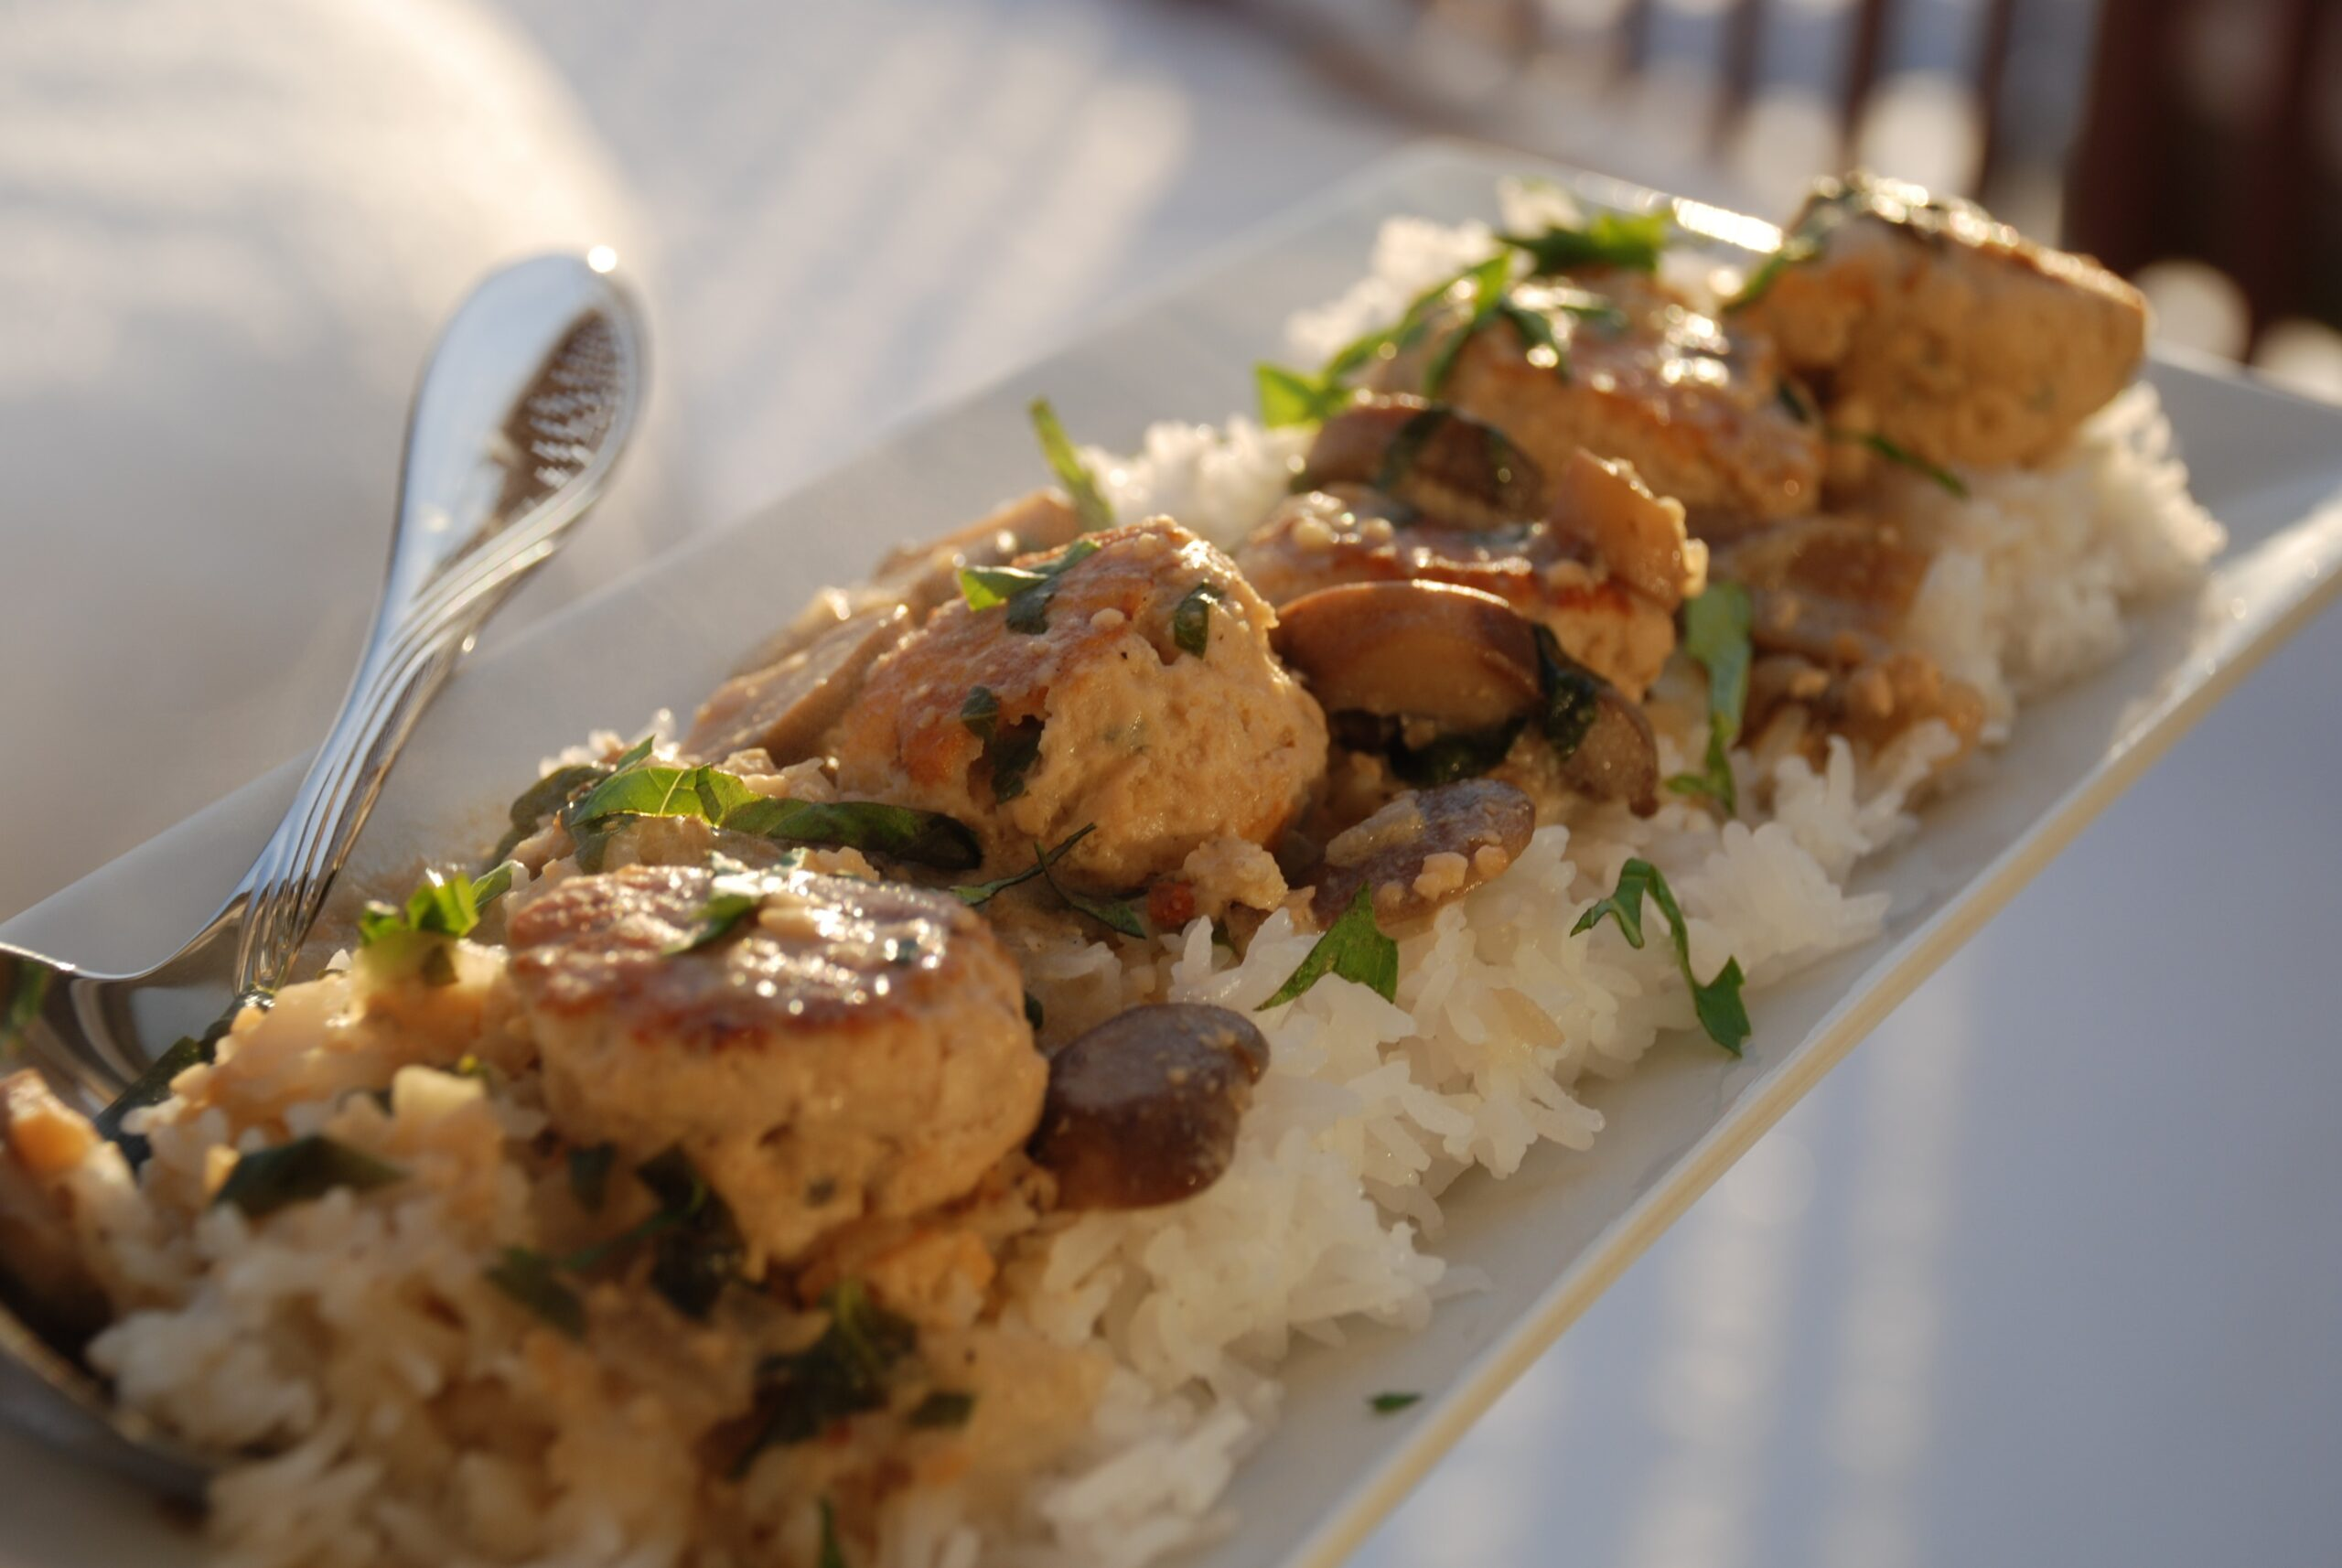 Chicken Meatballs with Mushroom and Basil Sauce